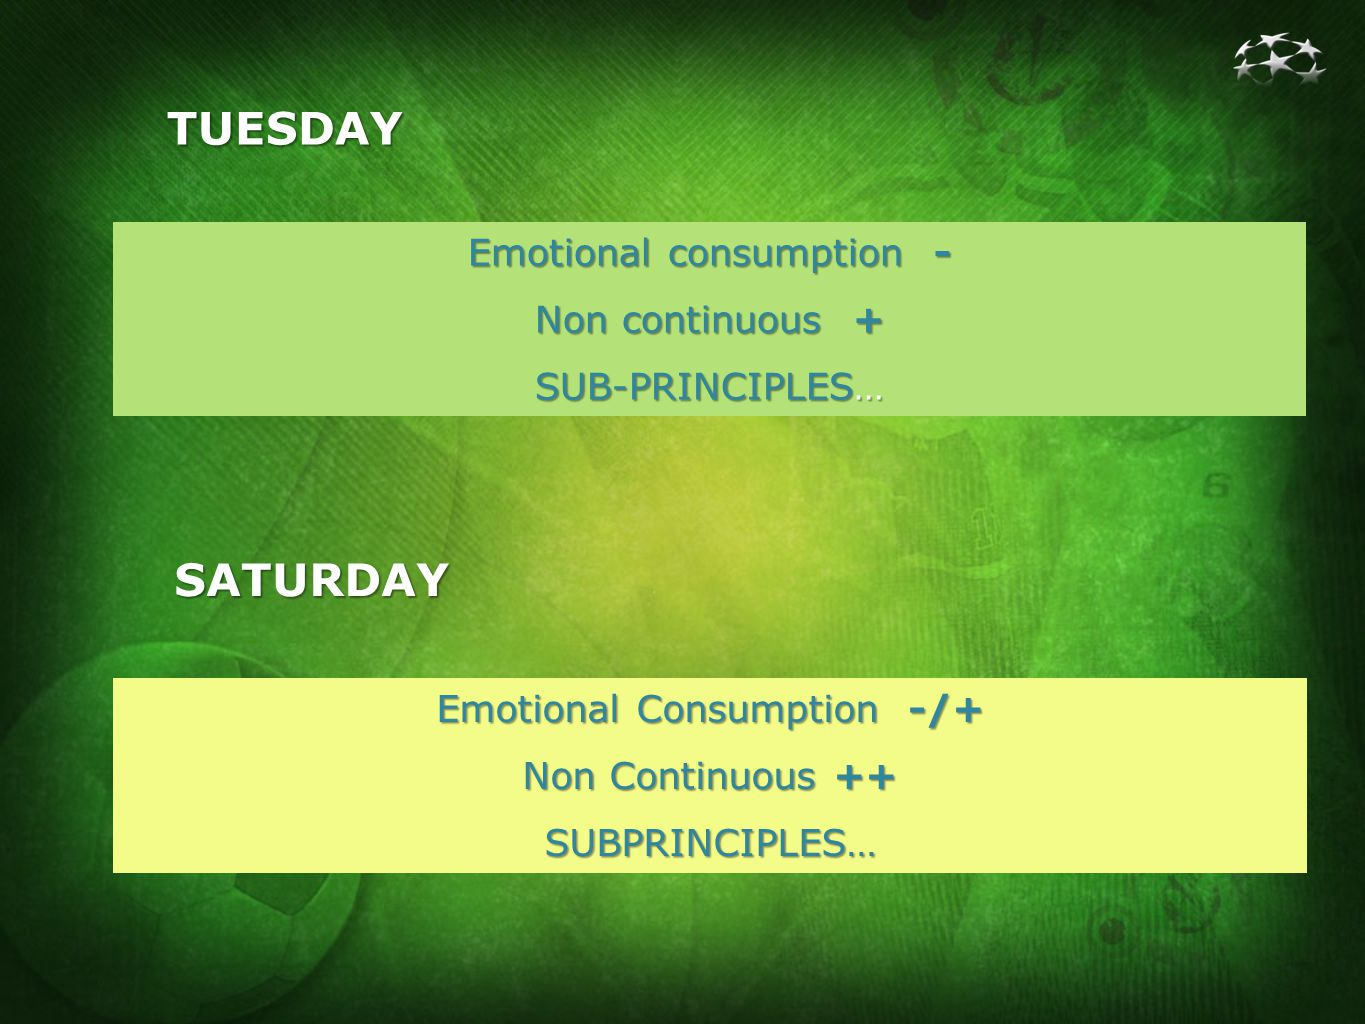 TUESDAY Emotional consumption - Non continuous + SUB-PRINCIPLES… SATURDAY Emotional Consumption -/+ Non Continuous ++ SUBPRINCIPLES…